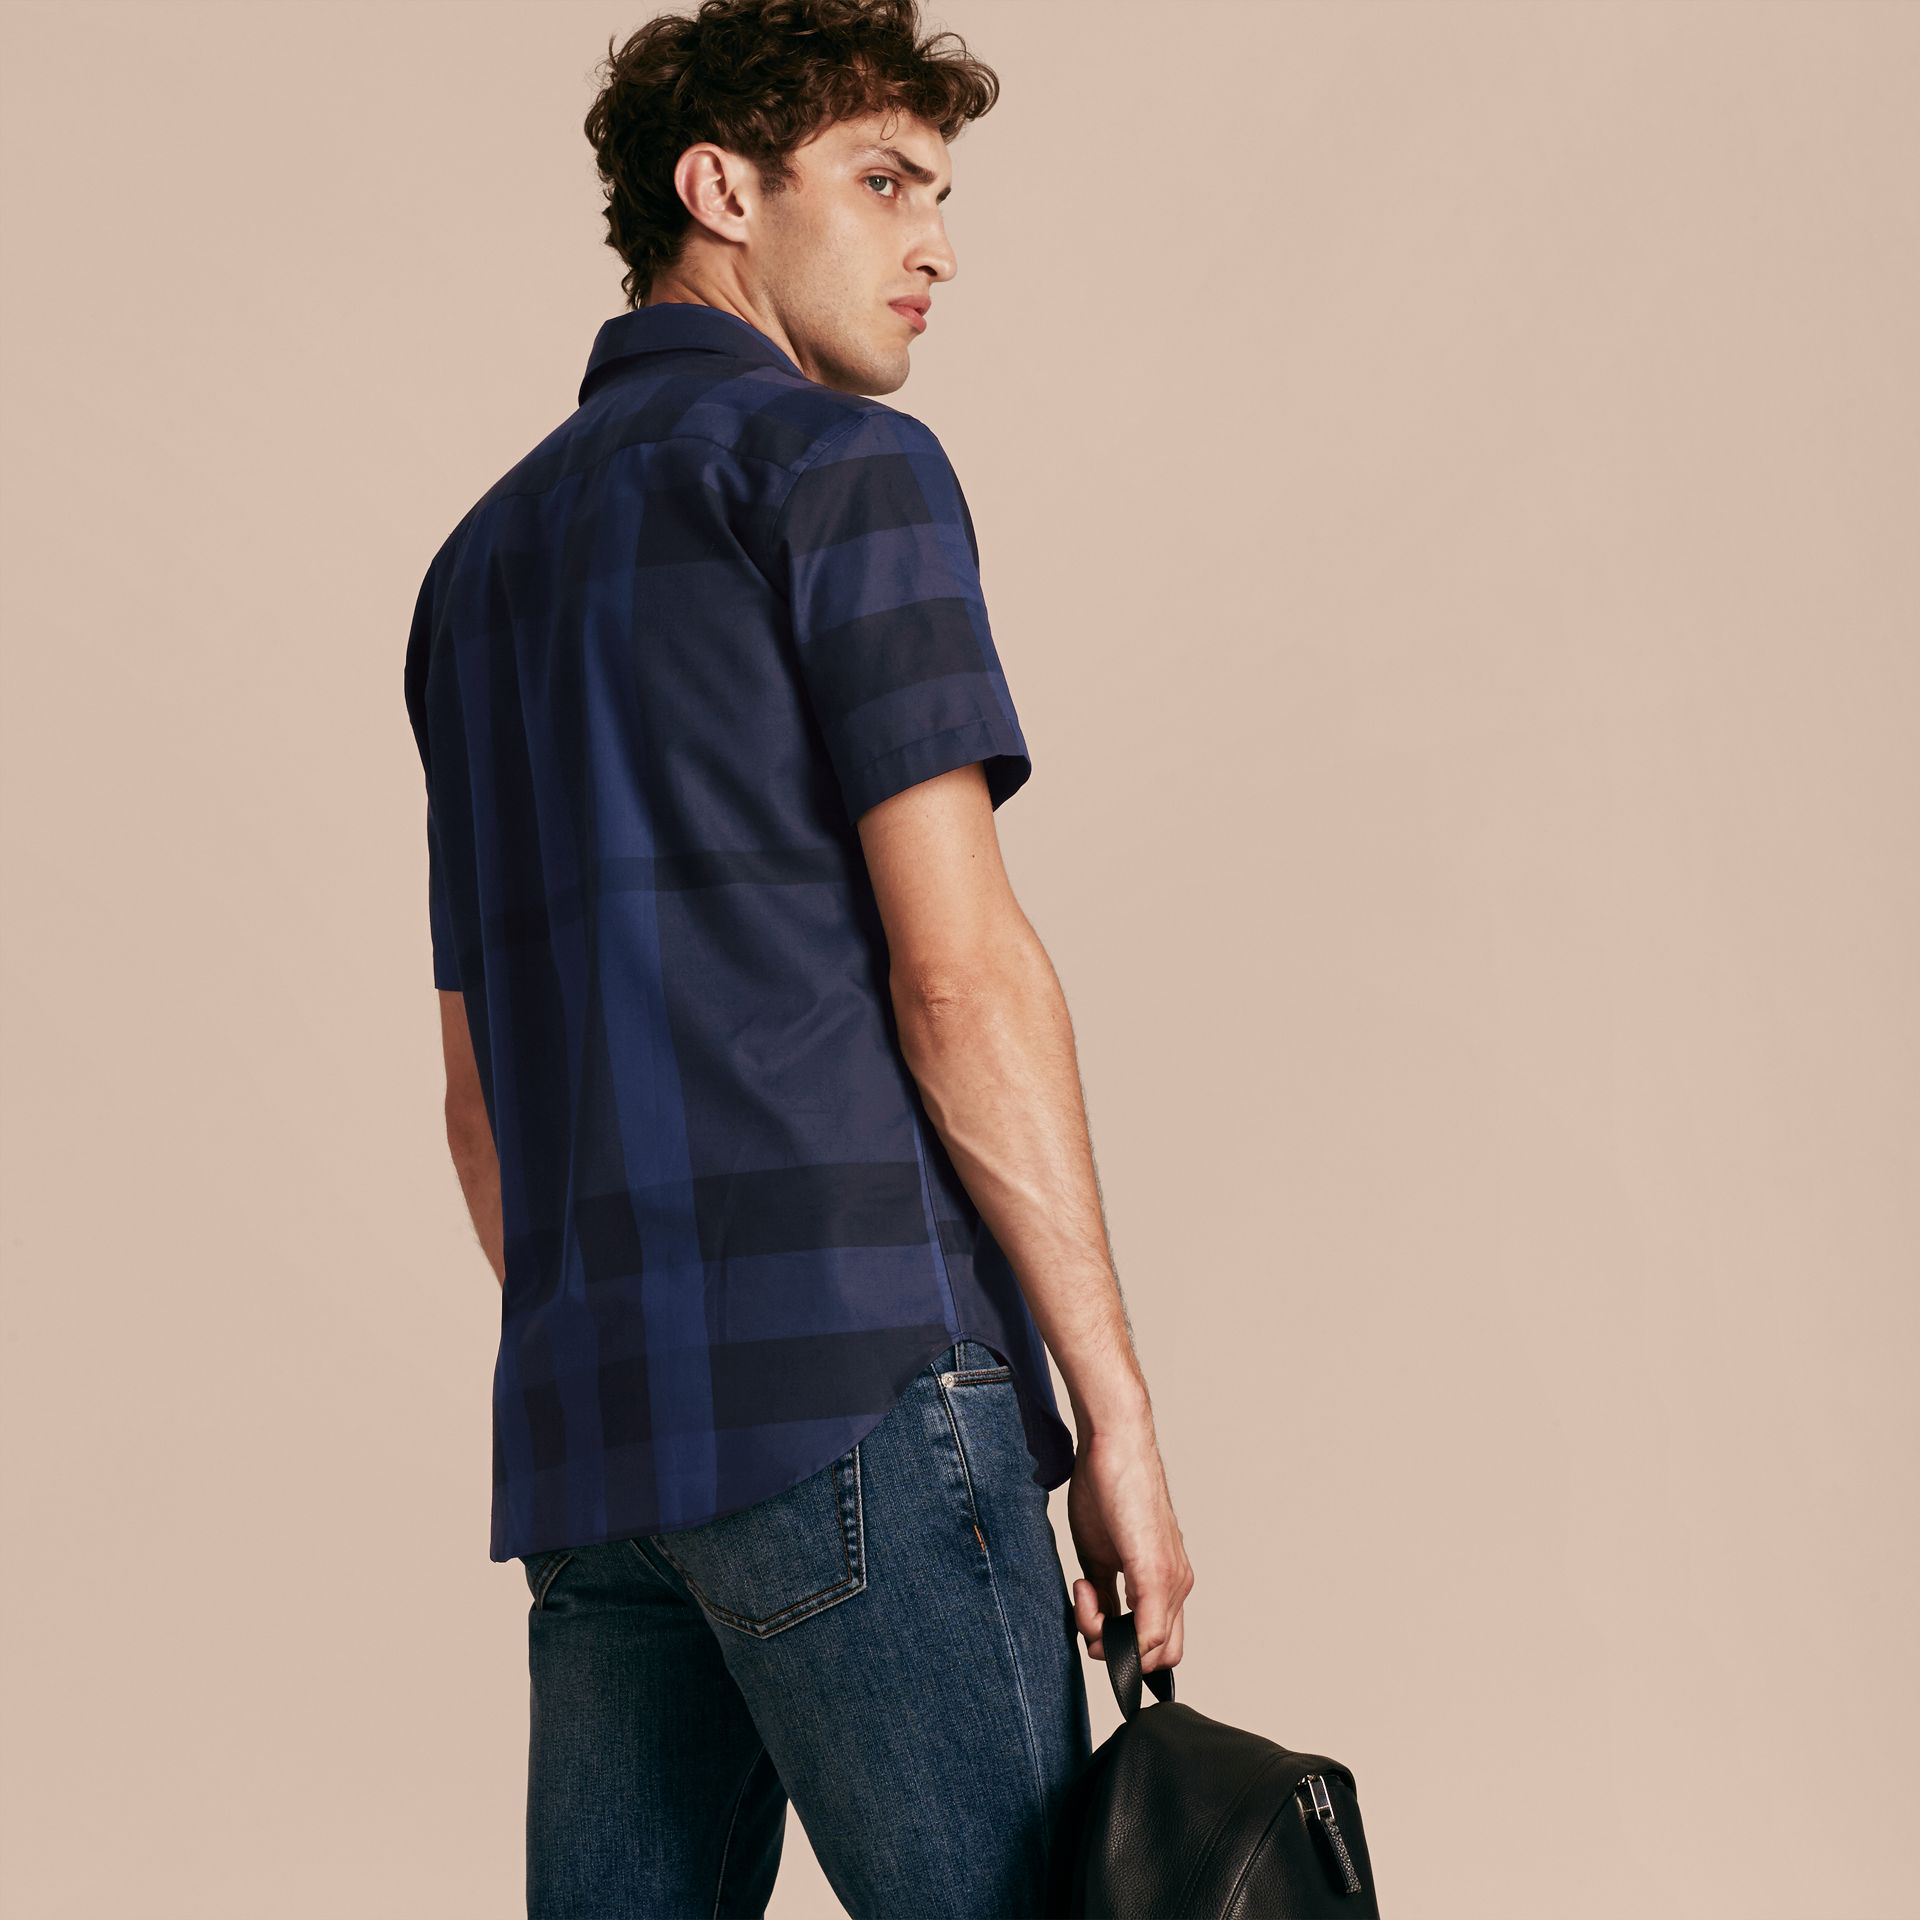 Navy Short-sleeved Check Cotton Shirt Navy - gallery image 3